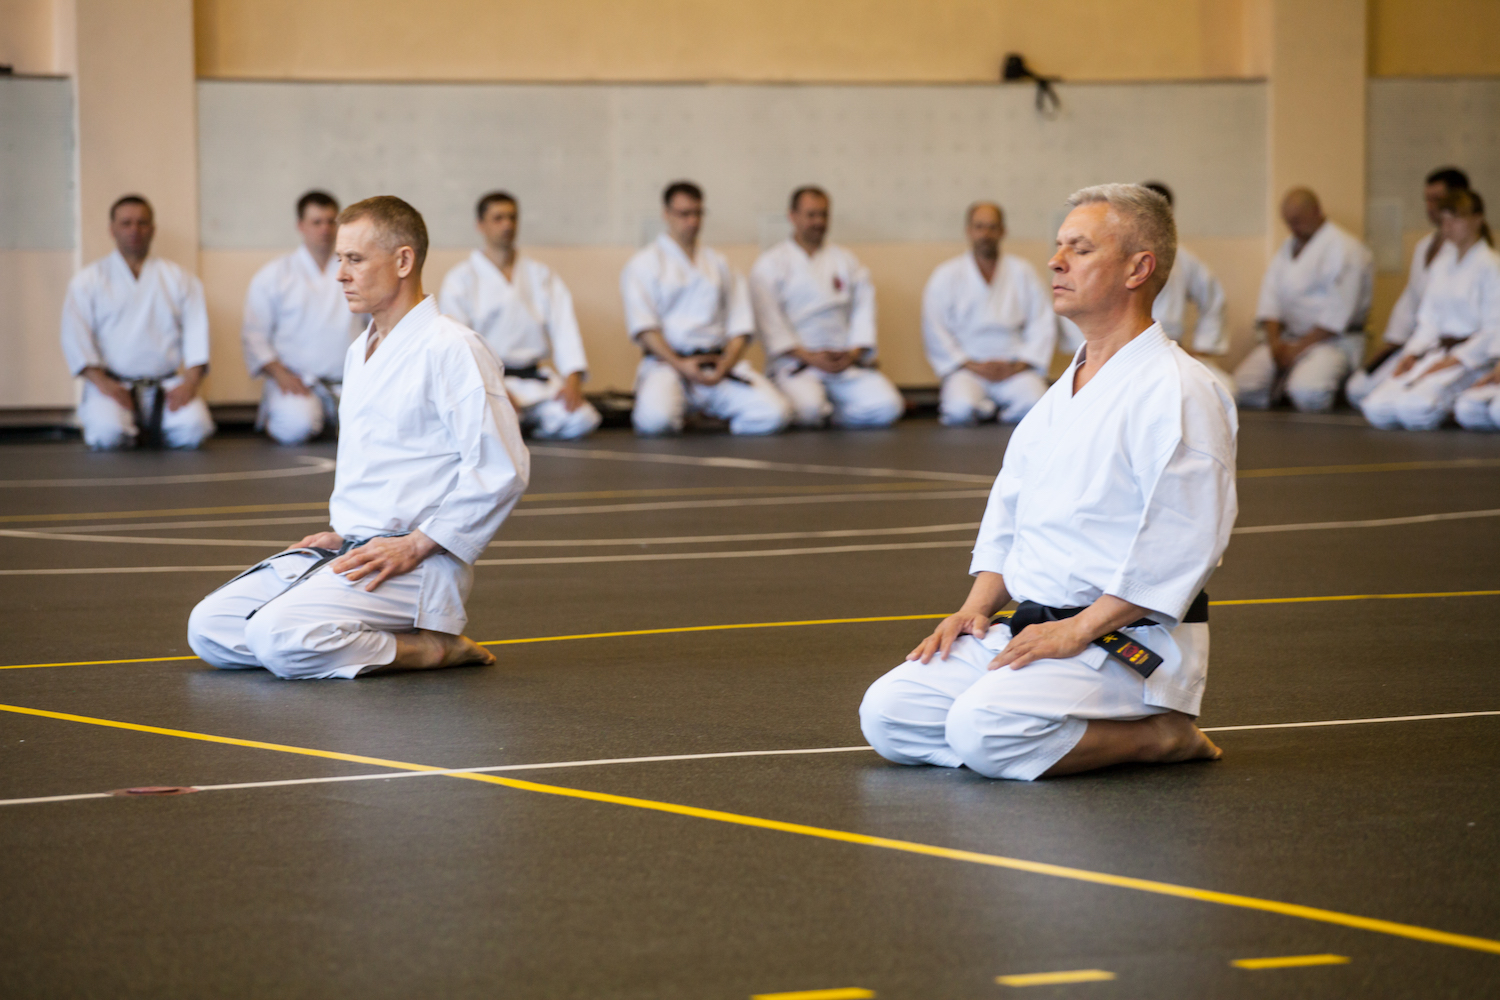 8 International Traditional Karate-do seminar